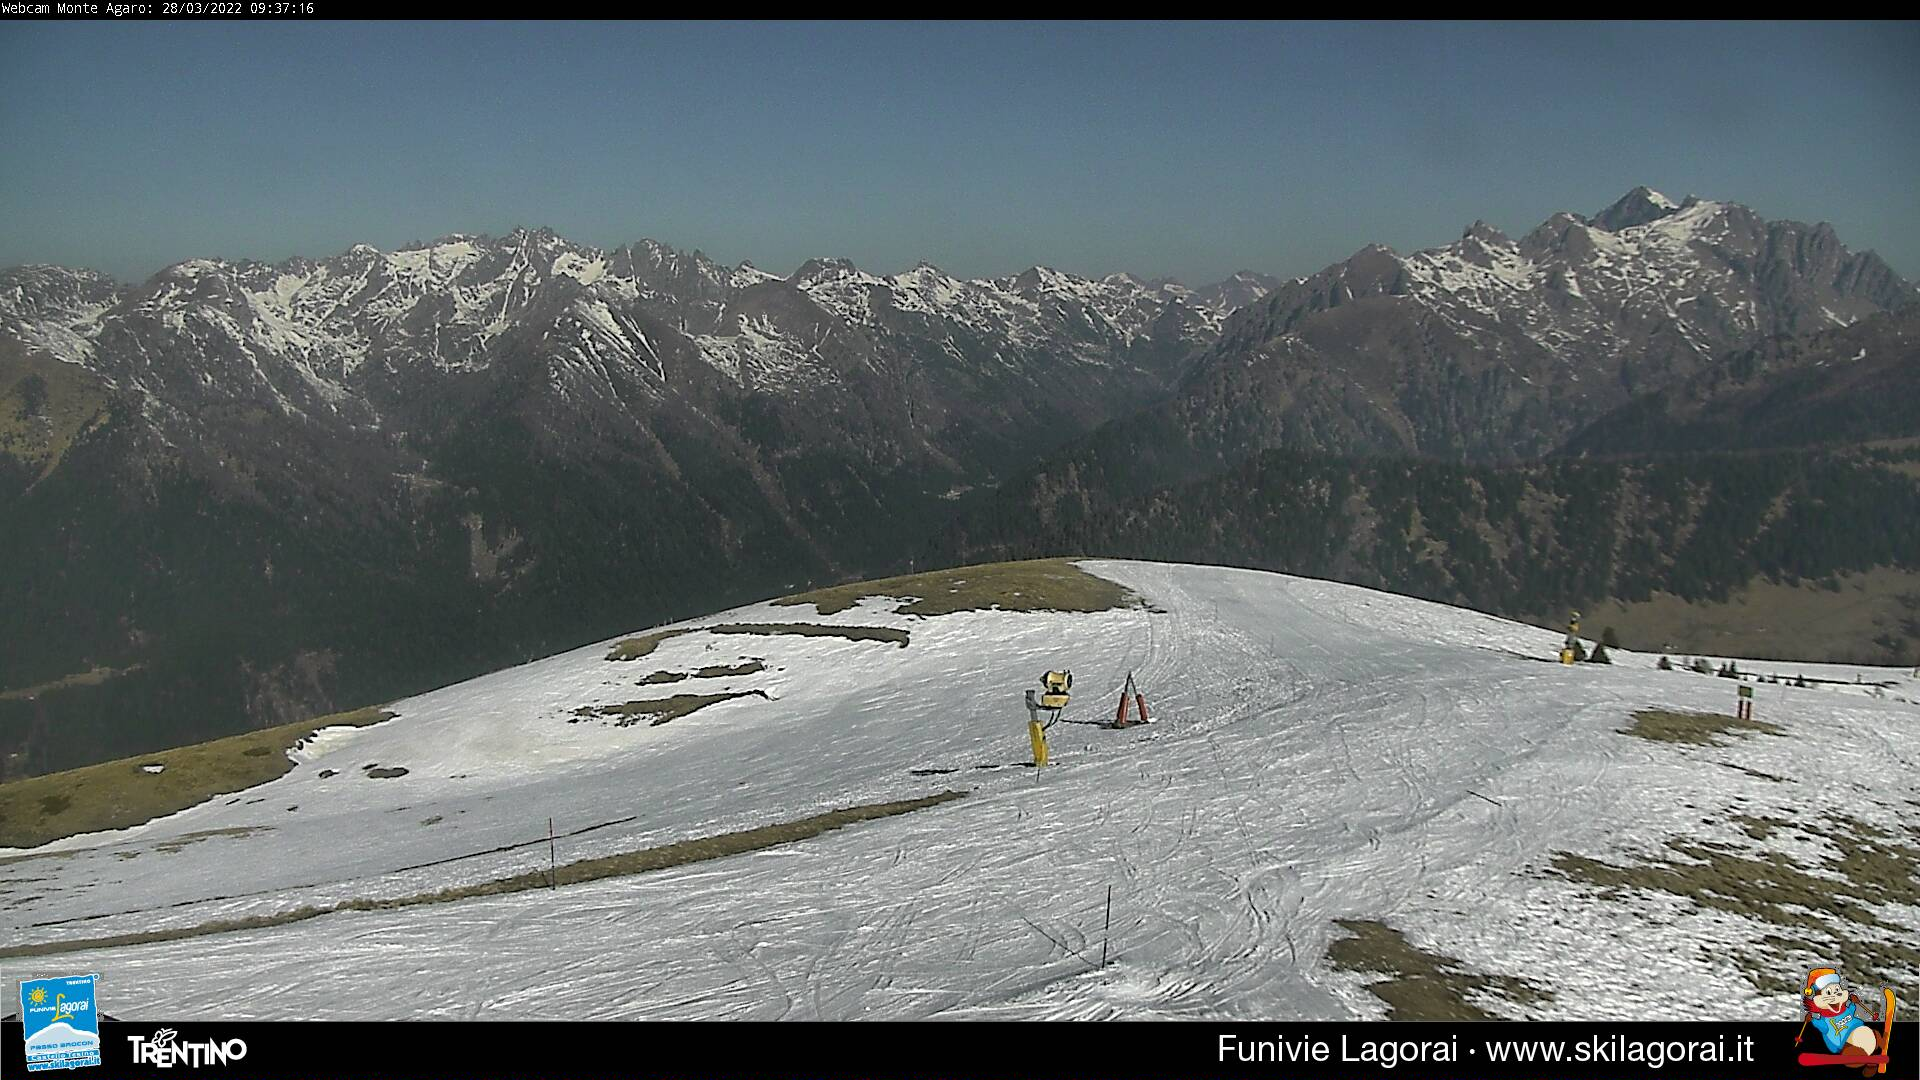 Webcam Monte Agaro